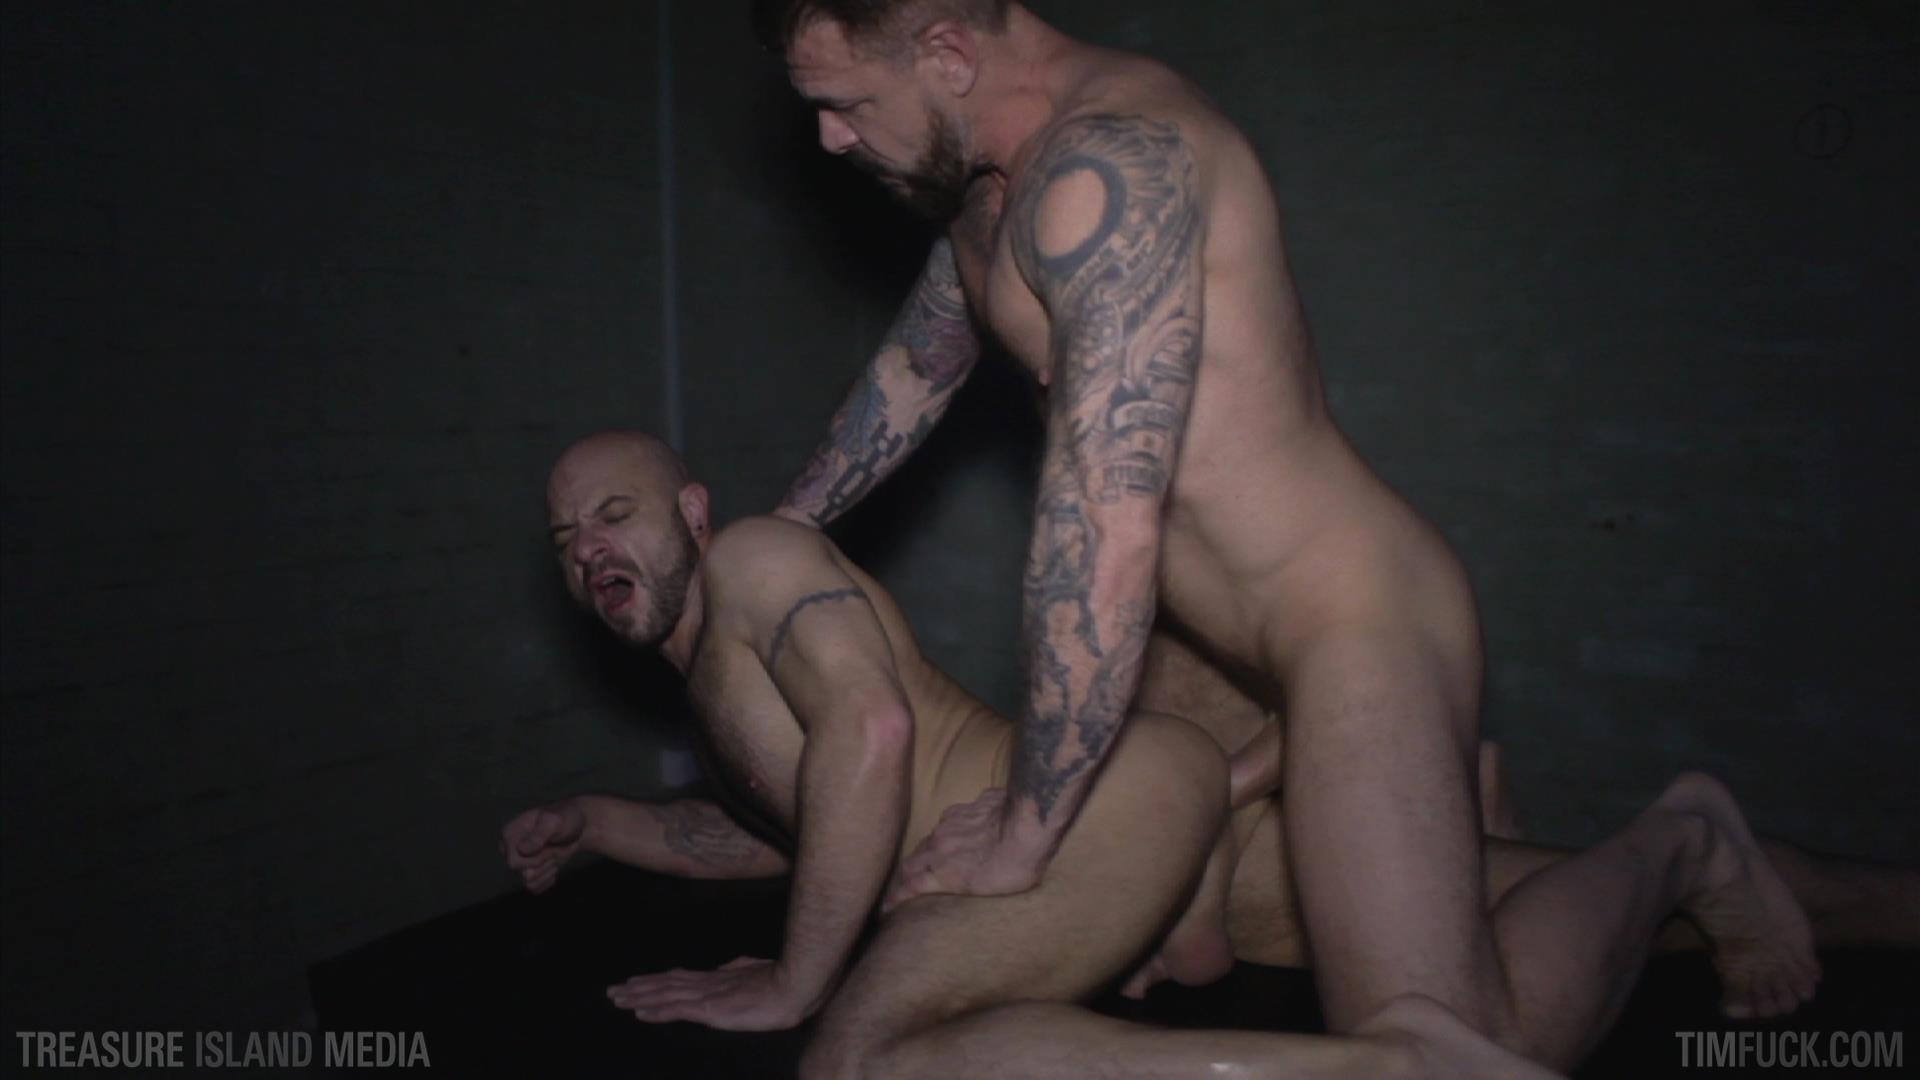 Treasure Island Media TimFuck Rocco Steele and Ben Statham Bareback Amateur Gay Porn 32 Treasure Island Media: Rocco Steele and Ben Statham Bareback In A London Bathhouse